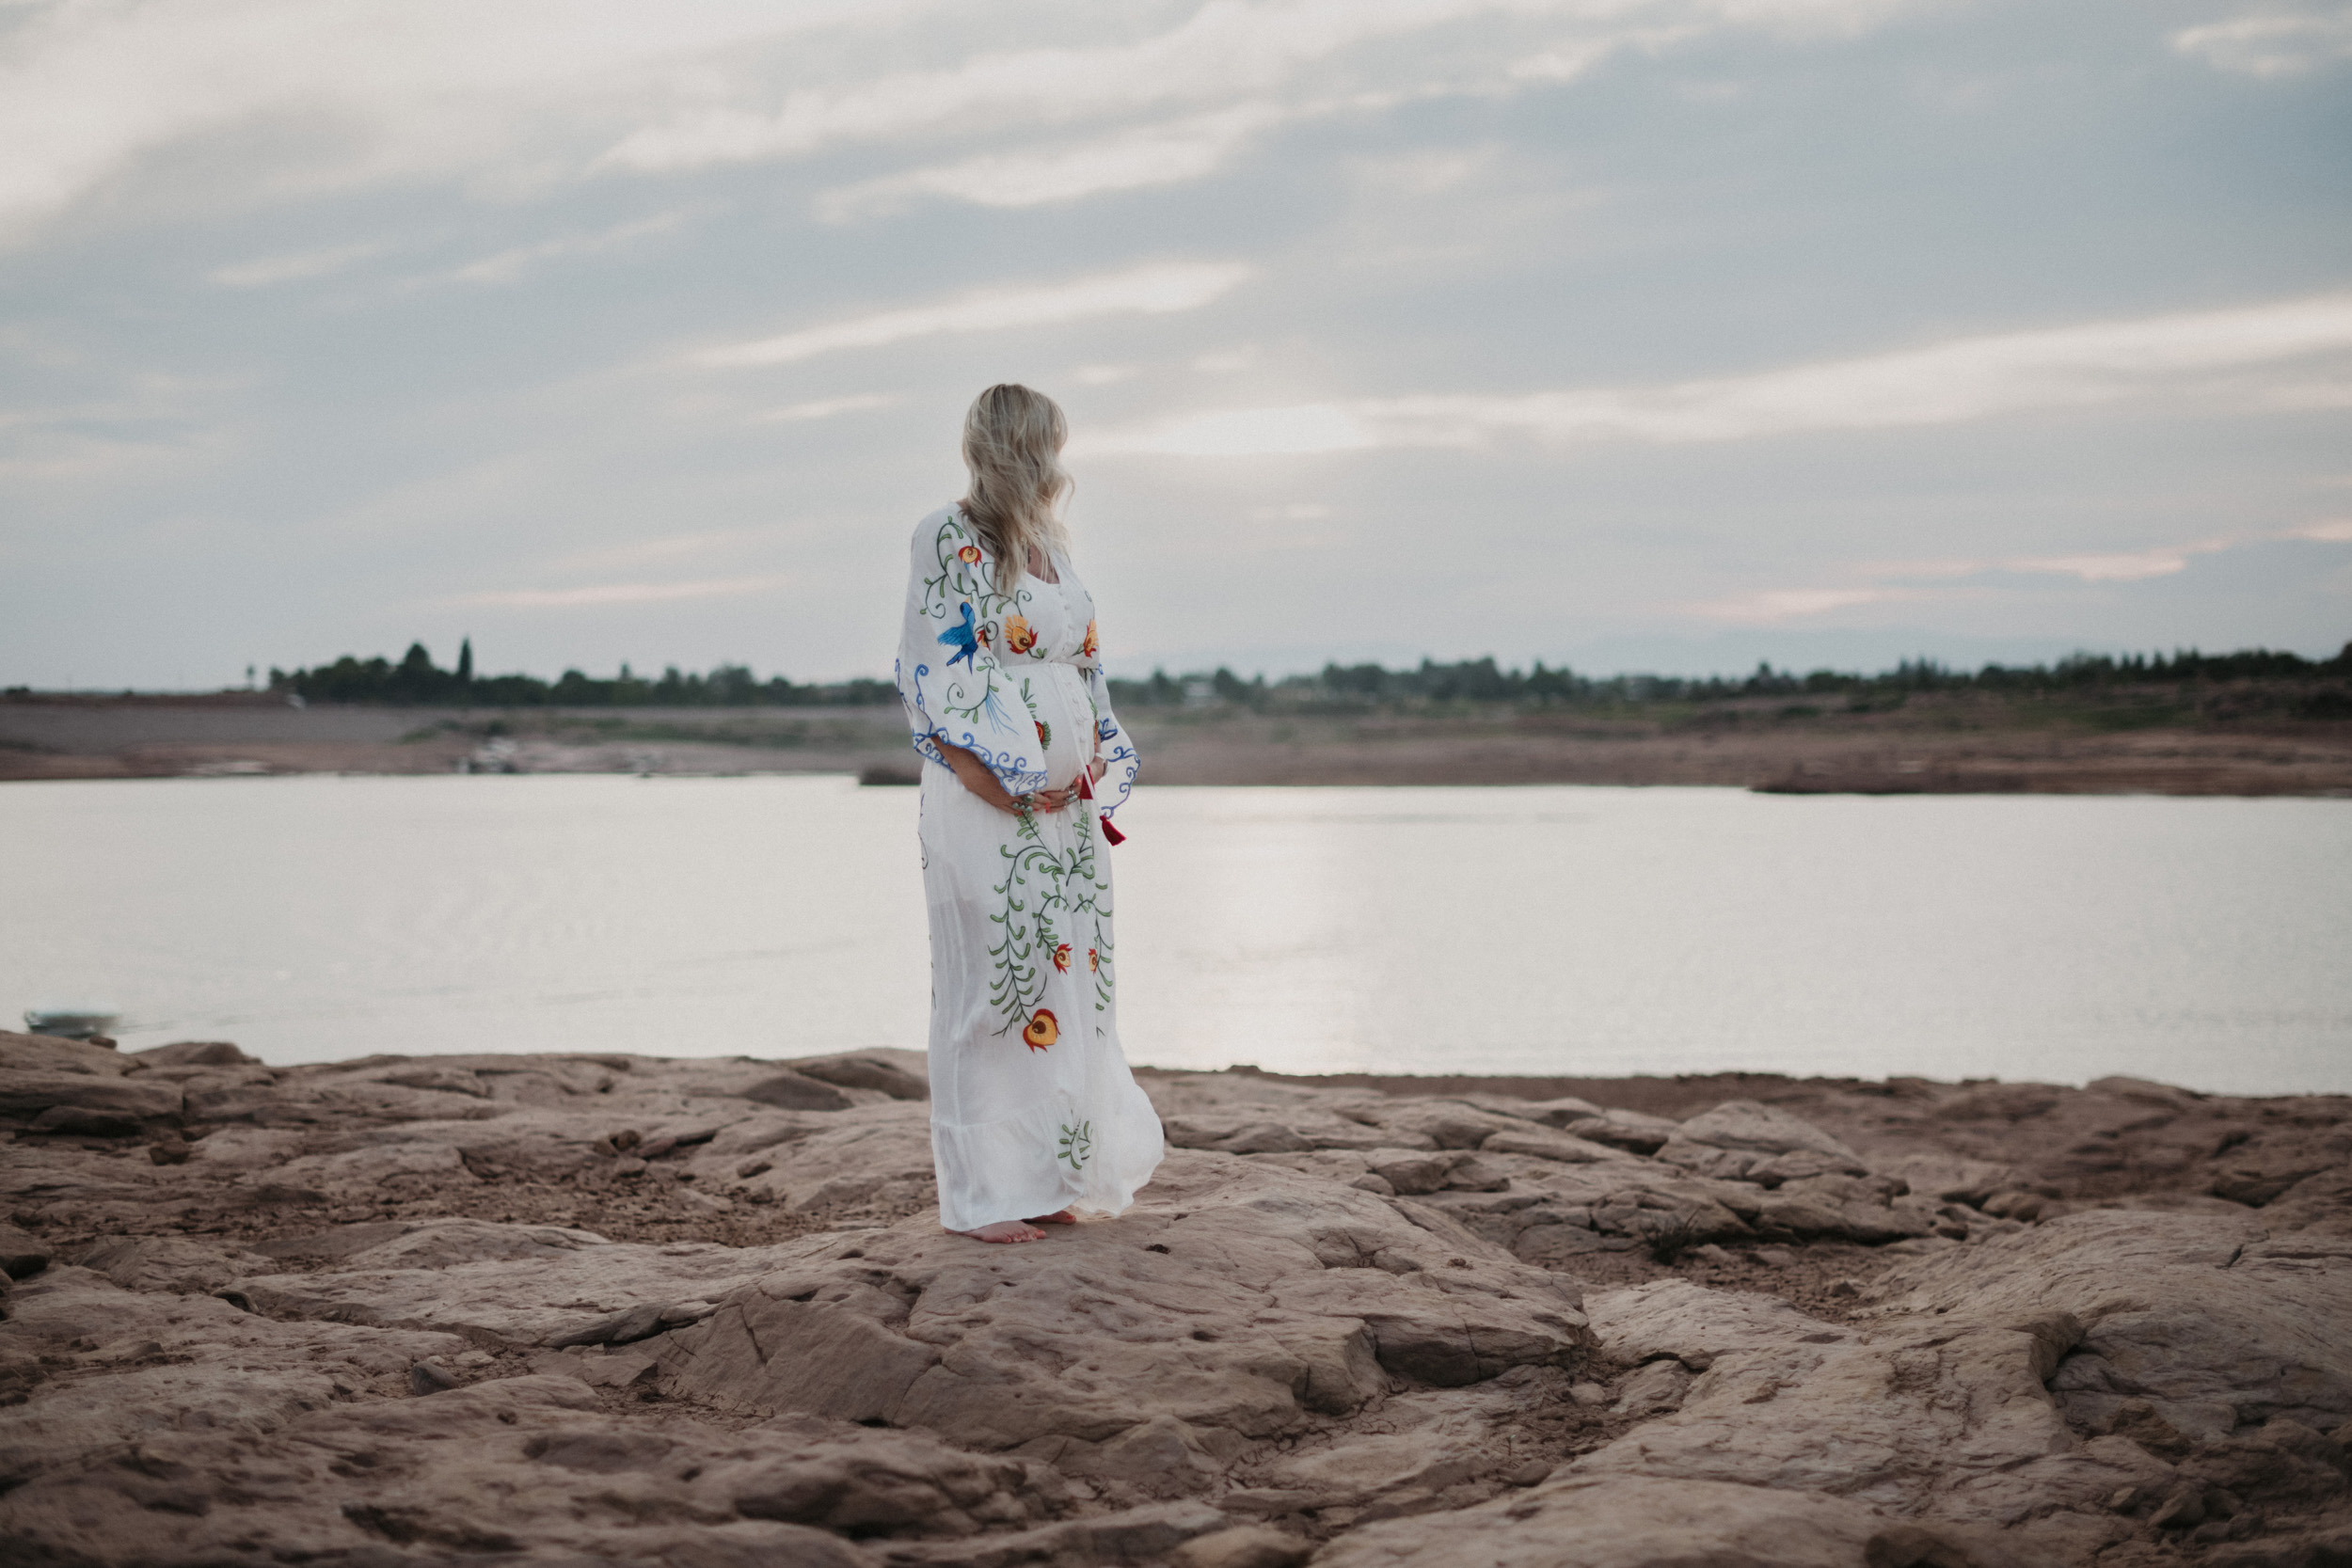 Pregnant woman in front of lake on rocks